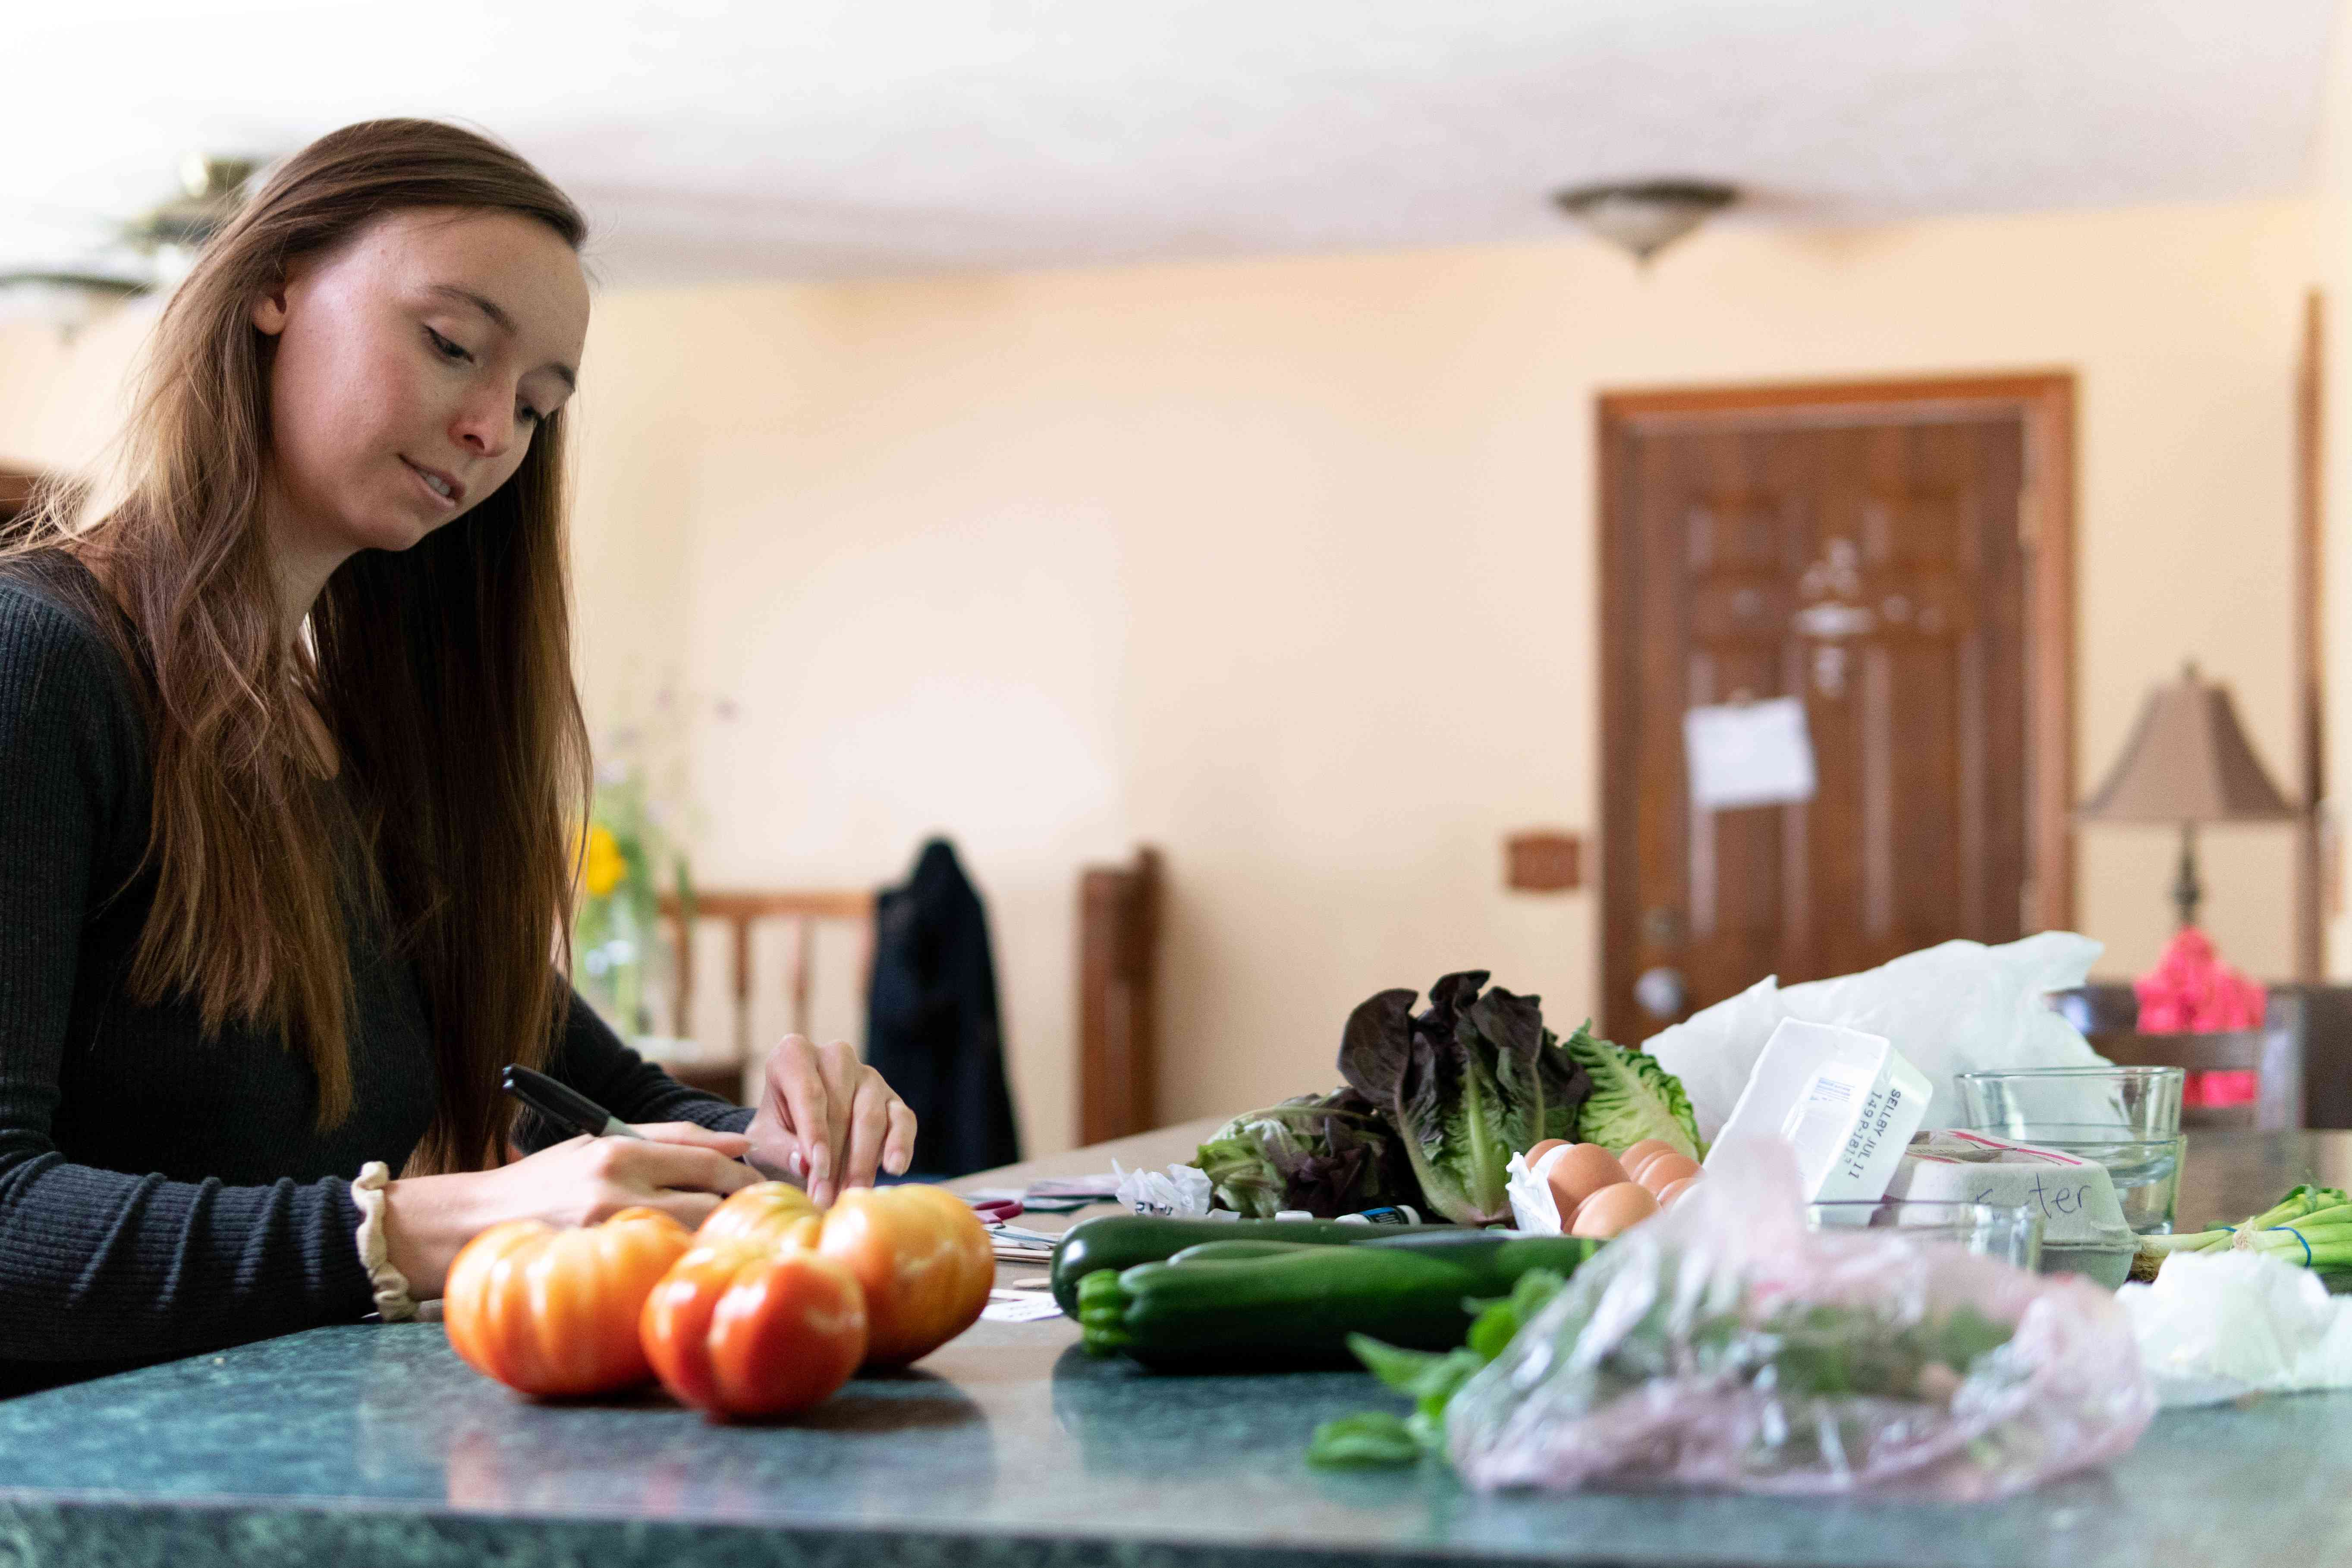 woman writes recipes on counter with veggies